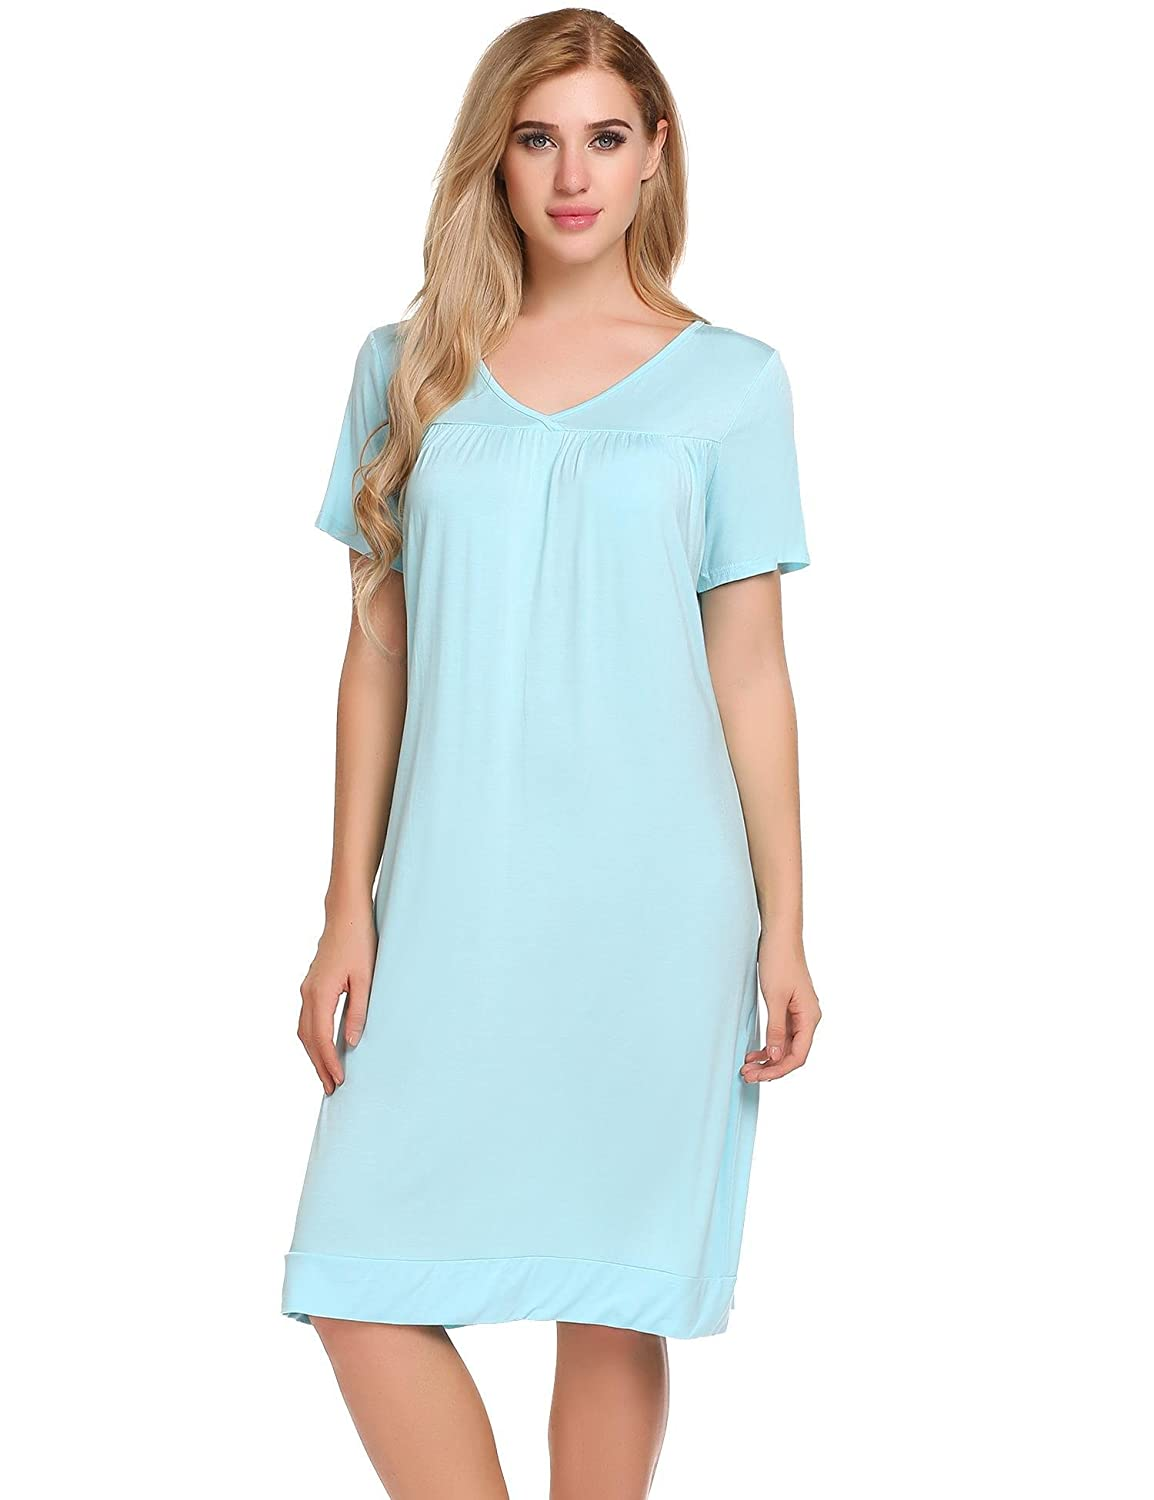 bluee L'amore Short Sleeve Womens Nightgown Cotton V Neck Midi Sleepwears for Women SXXL